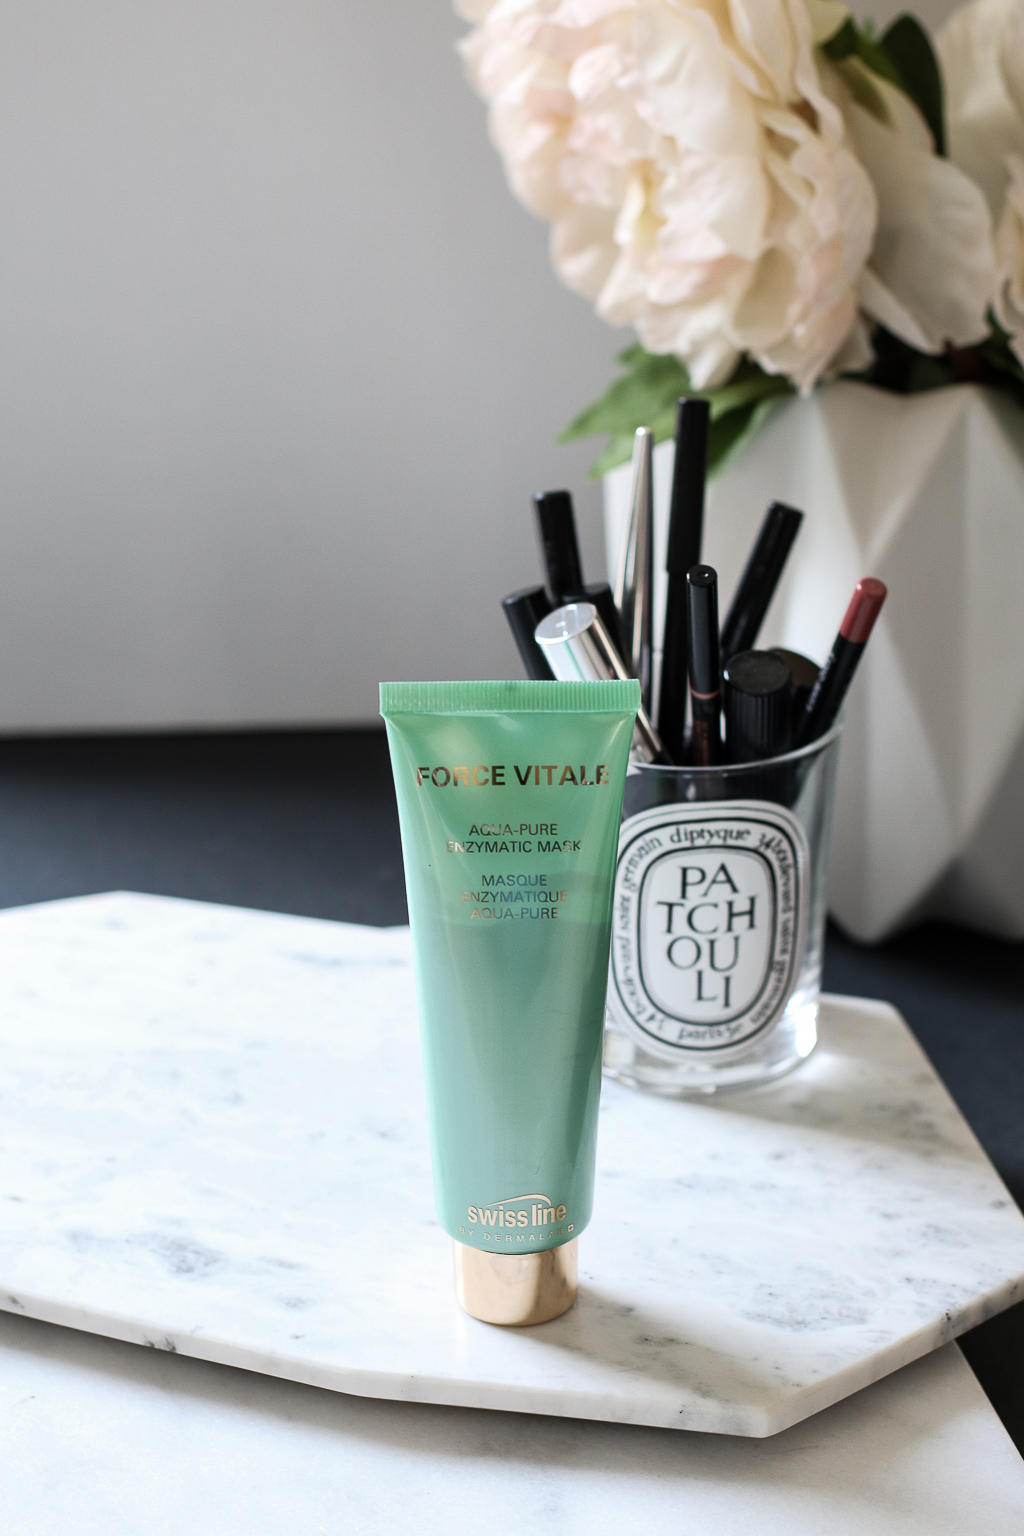 Swiss Line Products Are Amazing. Read on to find out why you should try this Swiss skincare brand!